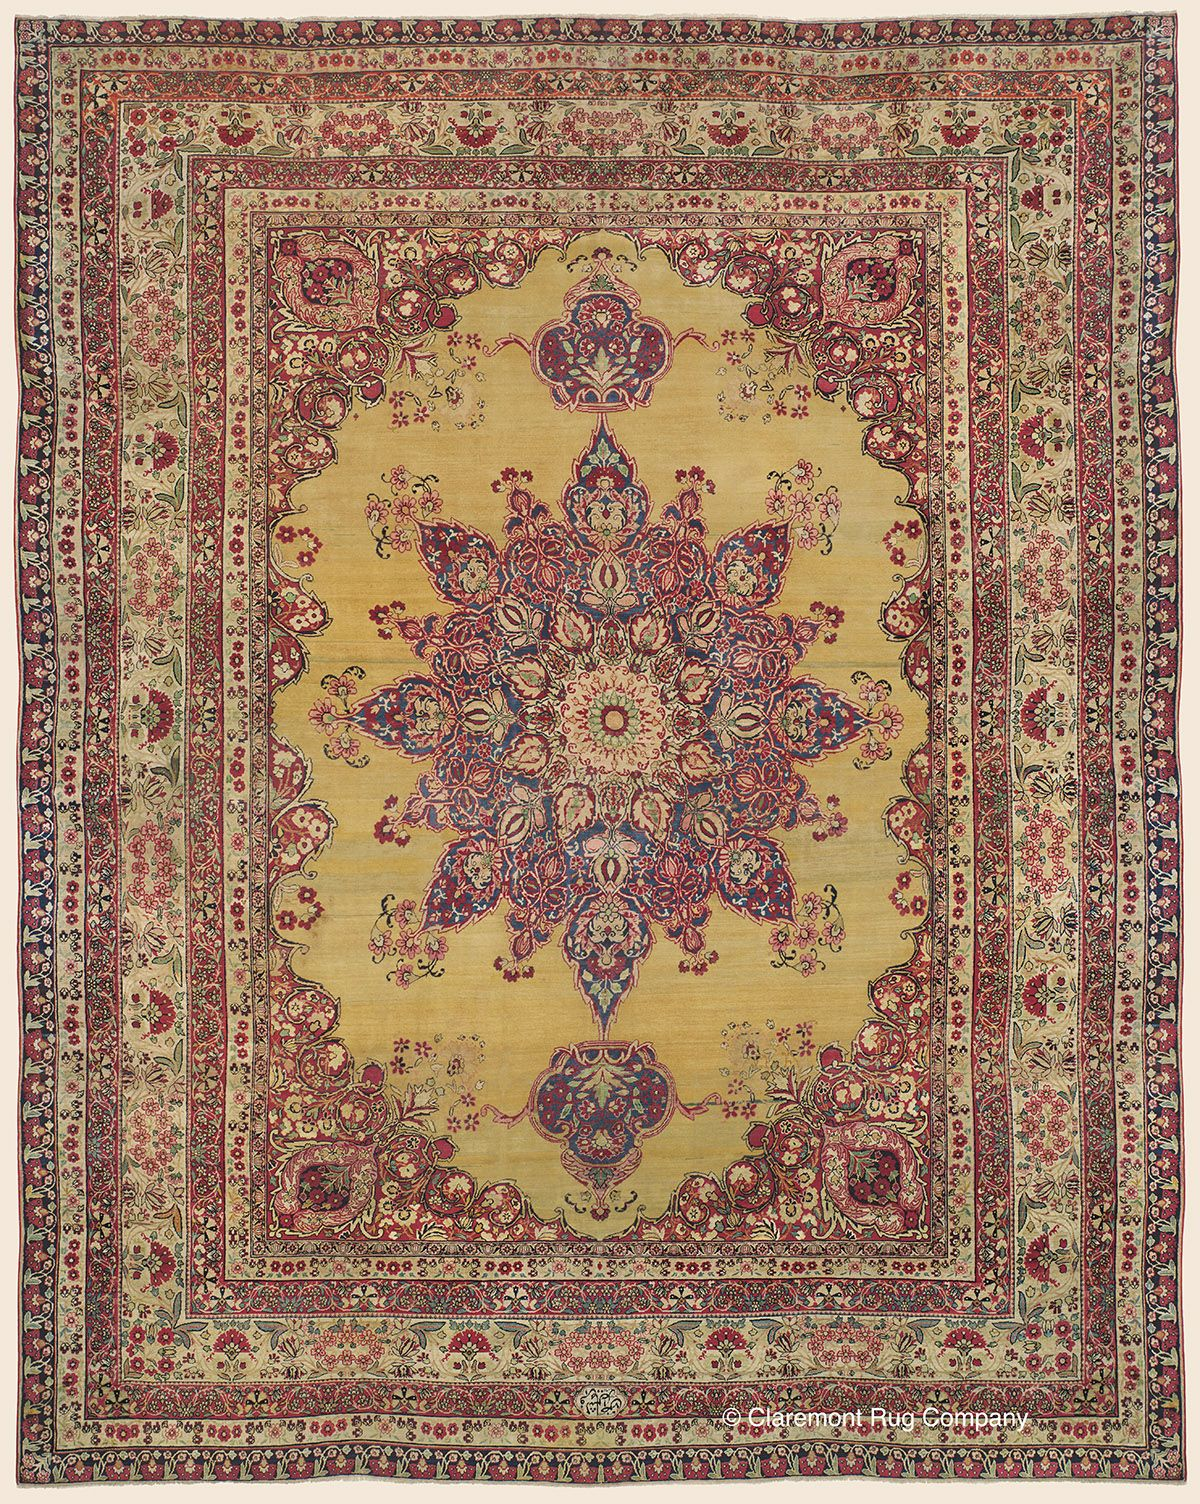 Laver Kirman 12 6 X 15 10 2nd Quarter 19th Century Southeast Persian Antique Rug Antique Persian Carpet Antique Oriental Rugs Claremont Rug Company